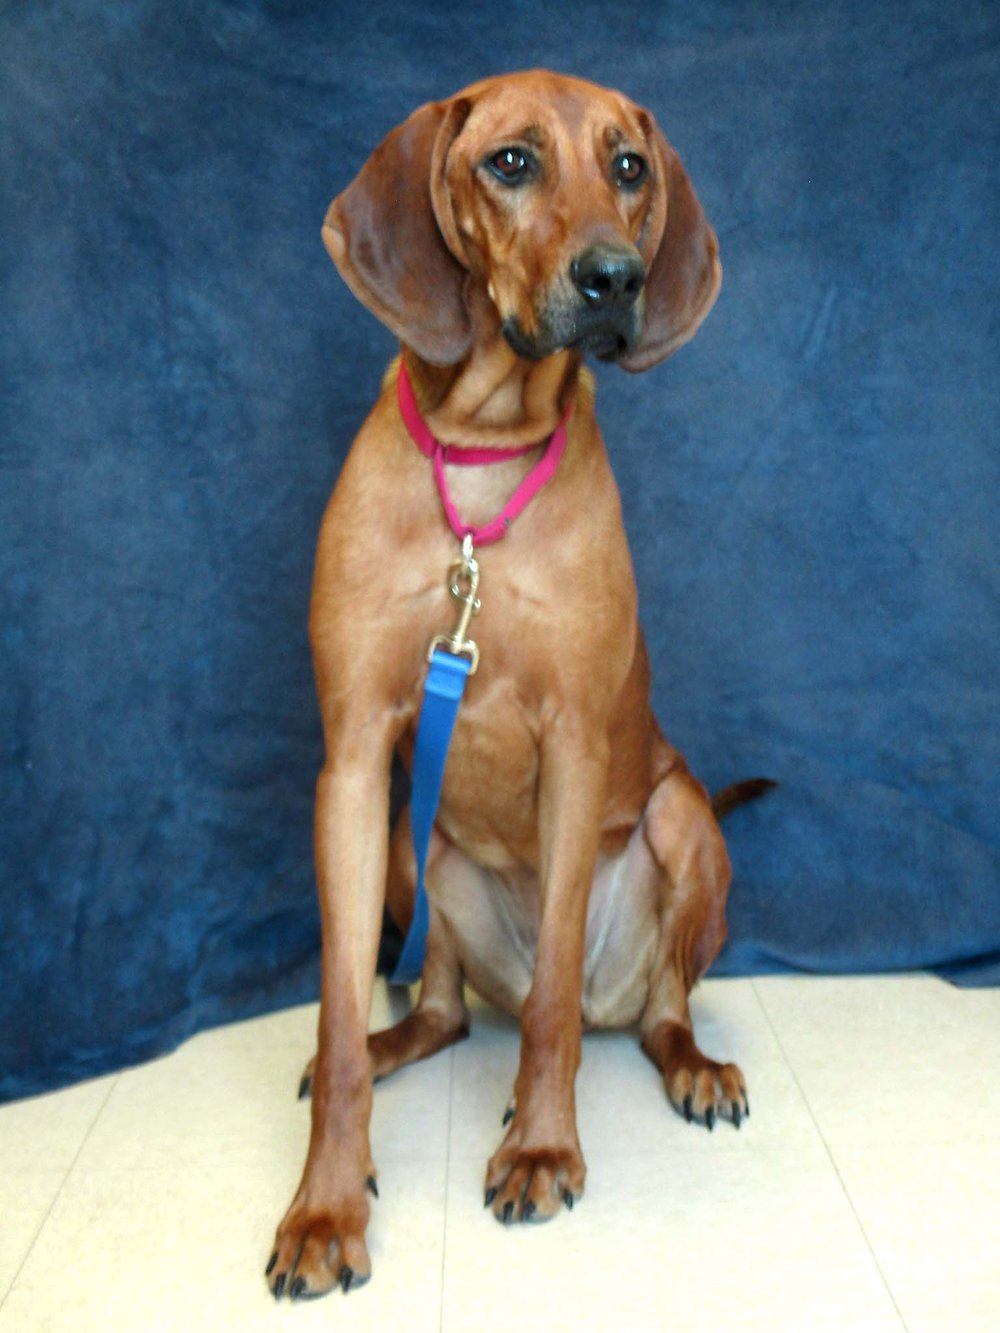 Lady is a 2-year-old Redbone Coonhound that came to HAWS from Alabama. She is an active girl that will need a lot of physical and mental exercise with a family of teens and older. Lady is very playful with other dogs. HAWS is working on her walking with a loose leash. Come meet this social butterfly!